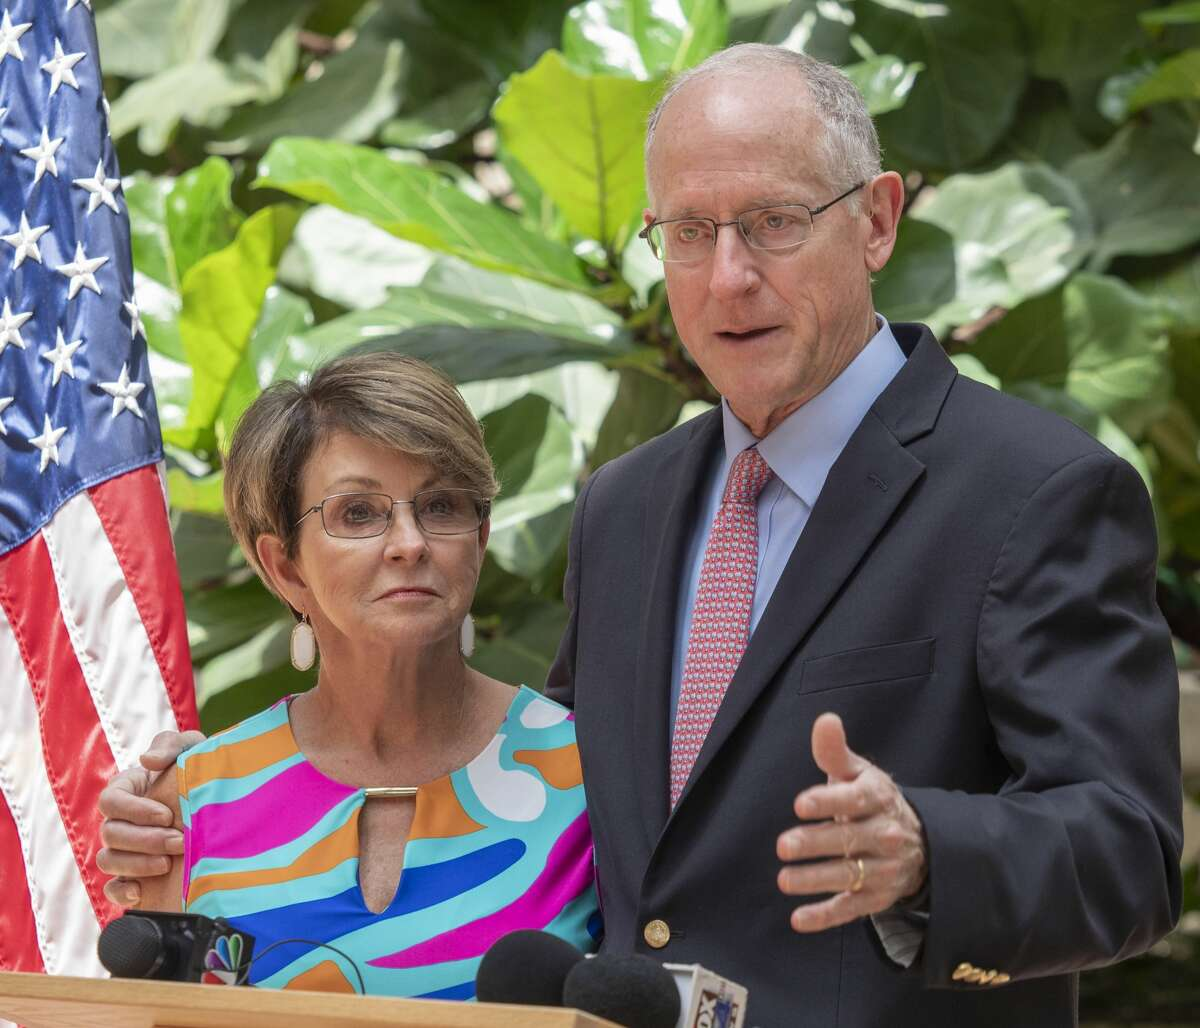 U.S. Rep. Mike Conaway, with his wife, Suzanne, announced in July he wouldn't seek re-election to Congress.